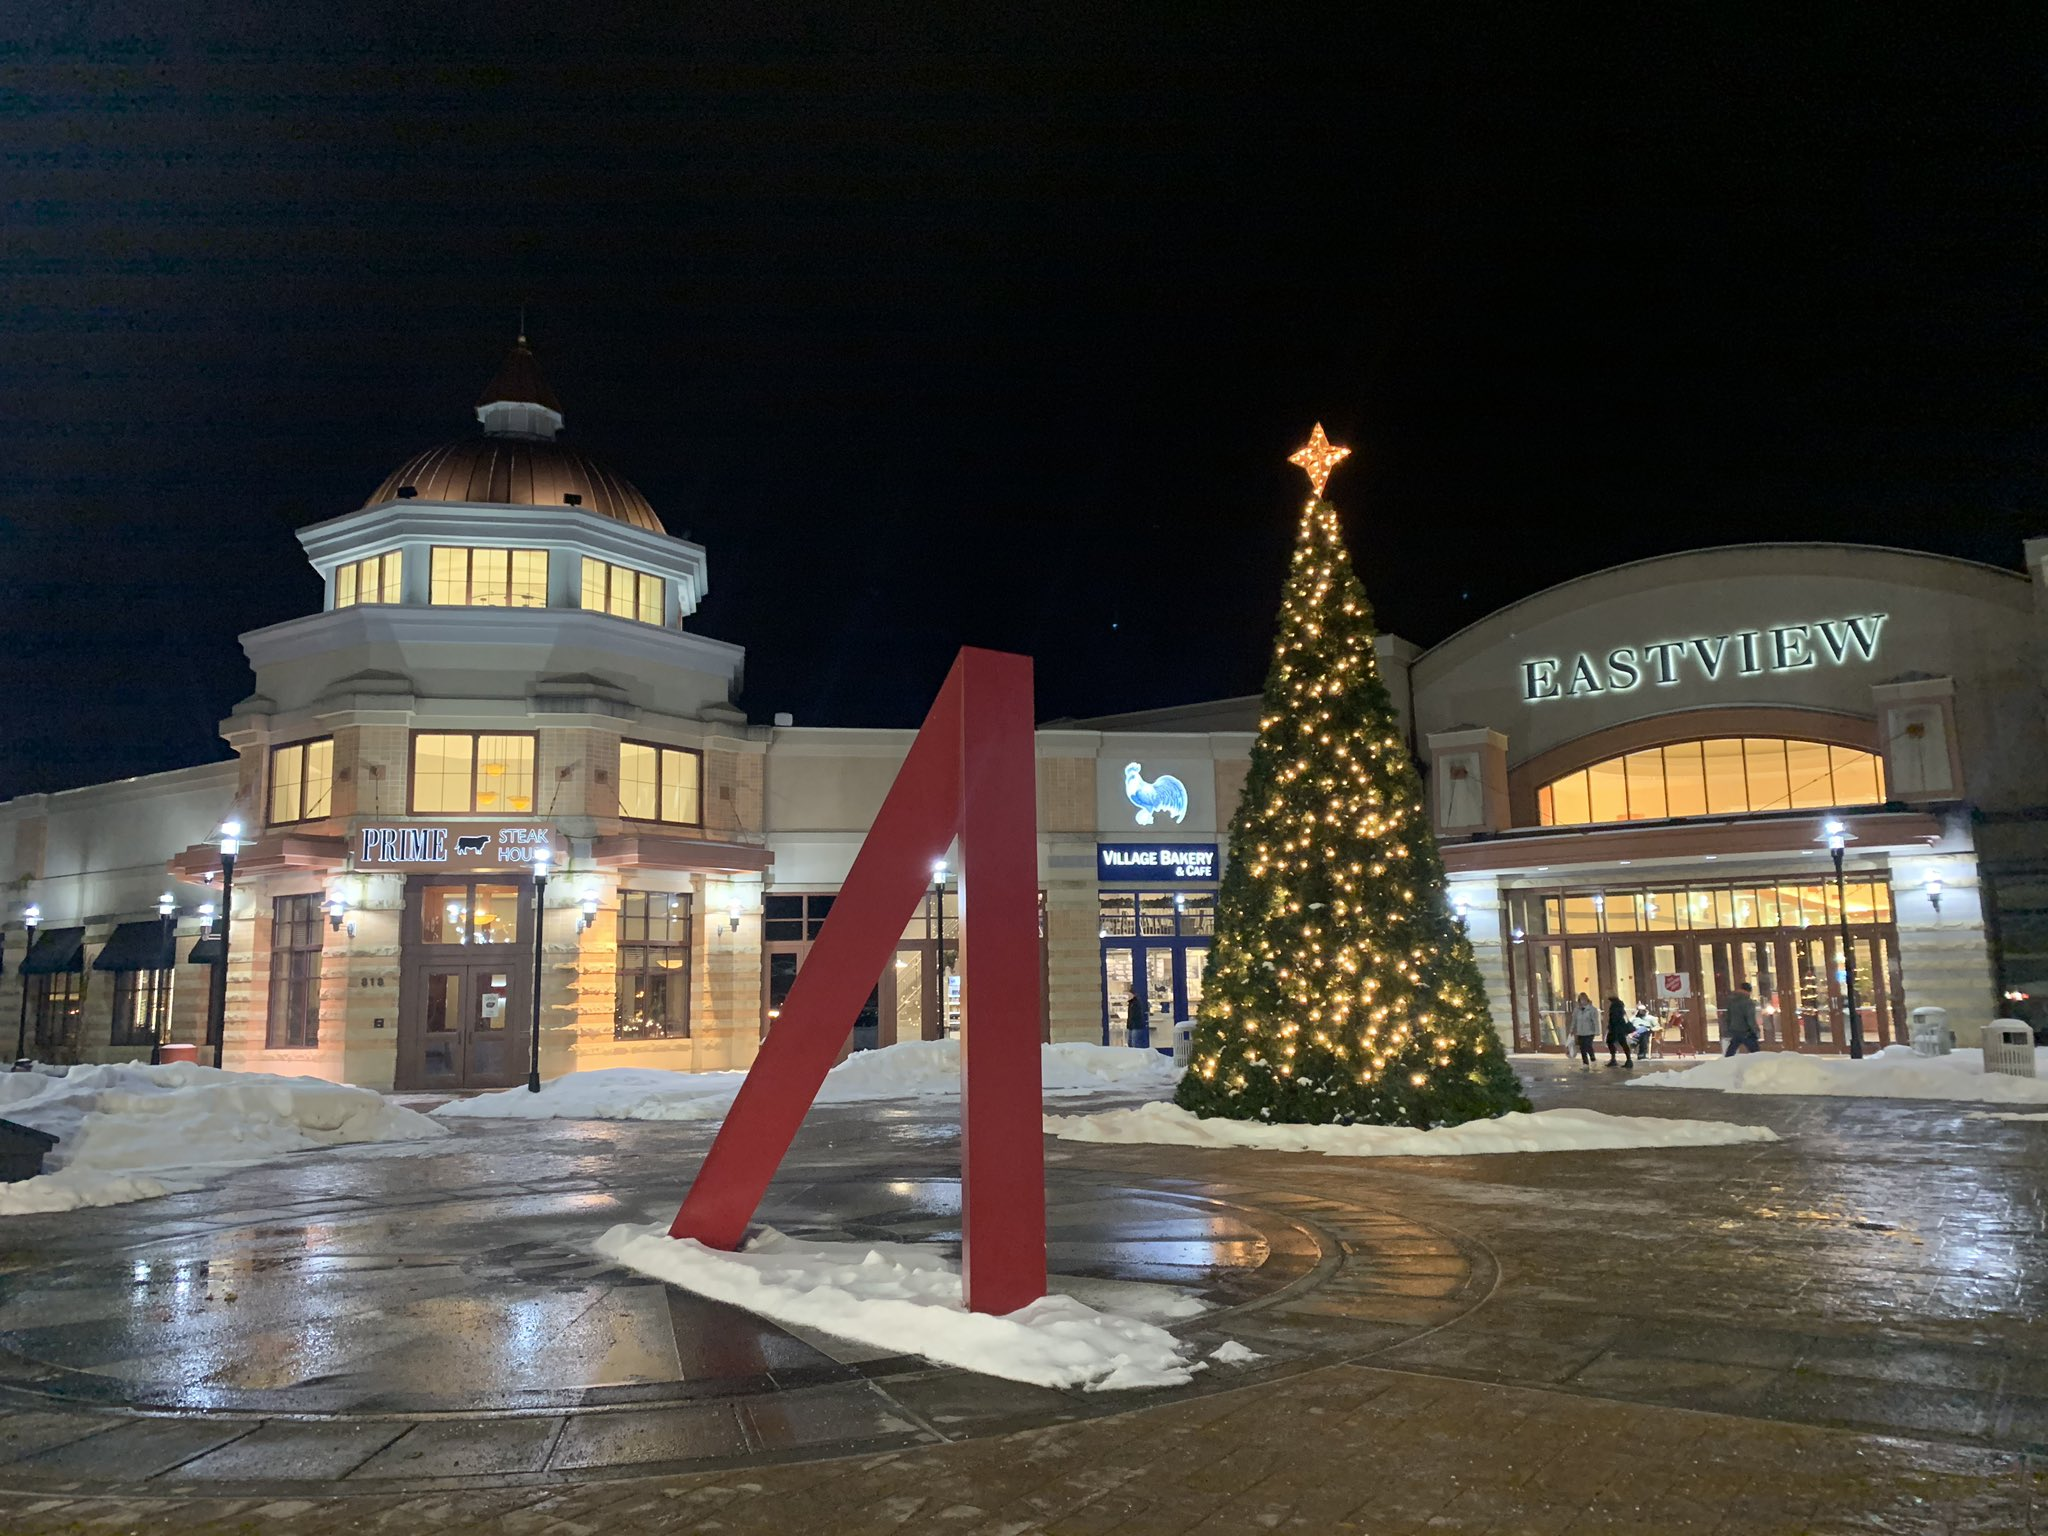 What's new at Eastview mall this holiday season?